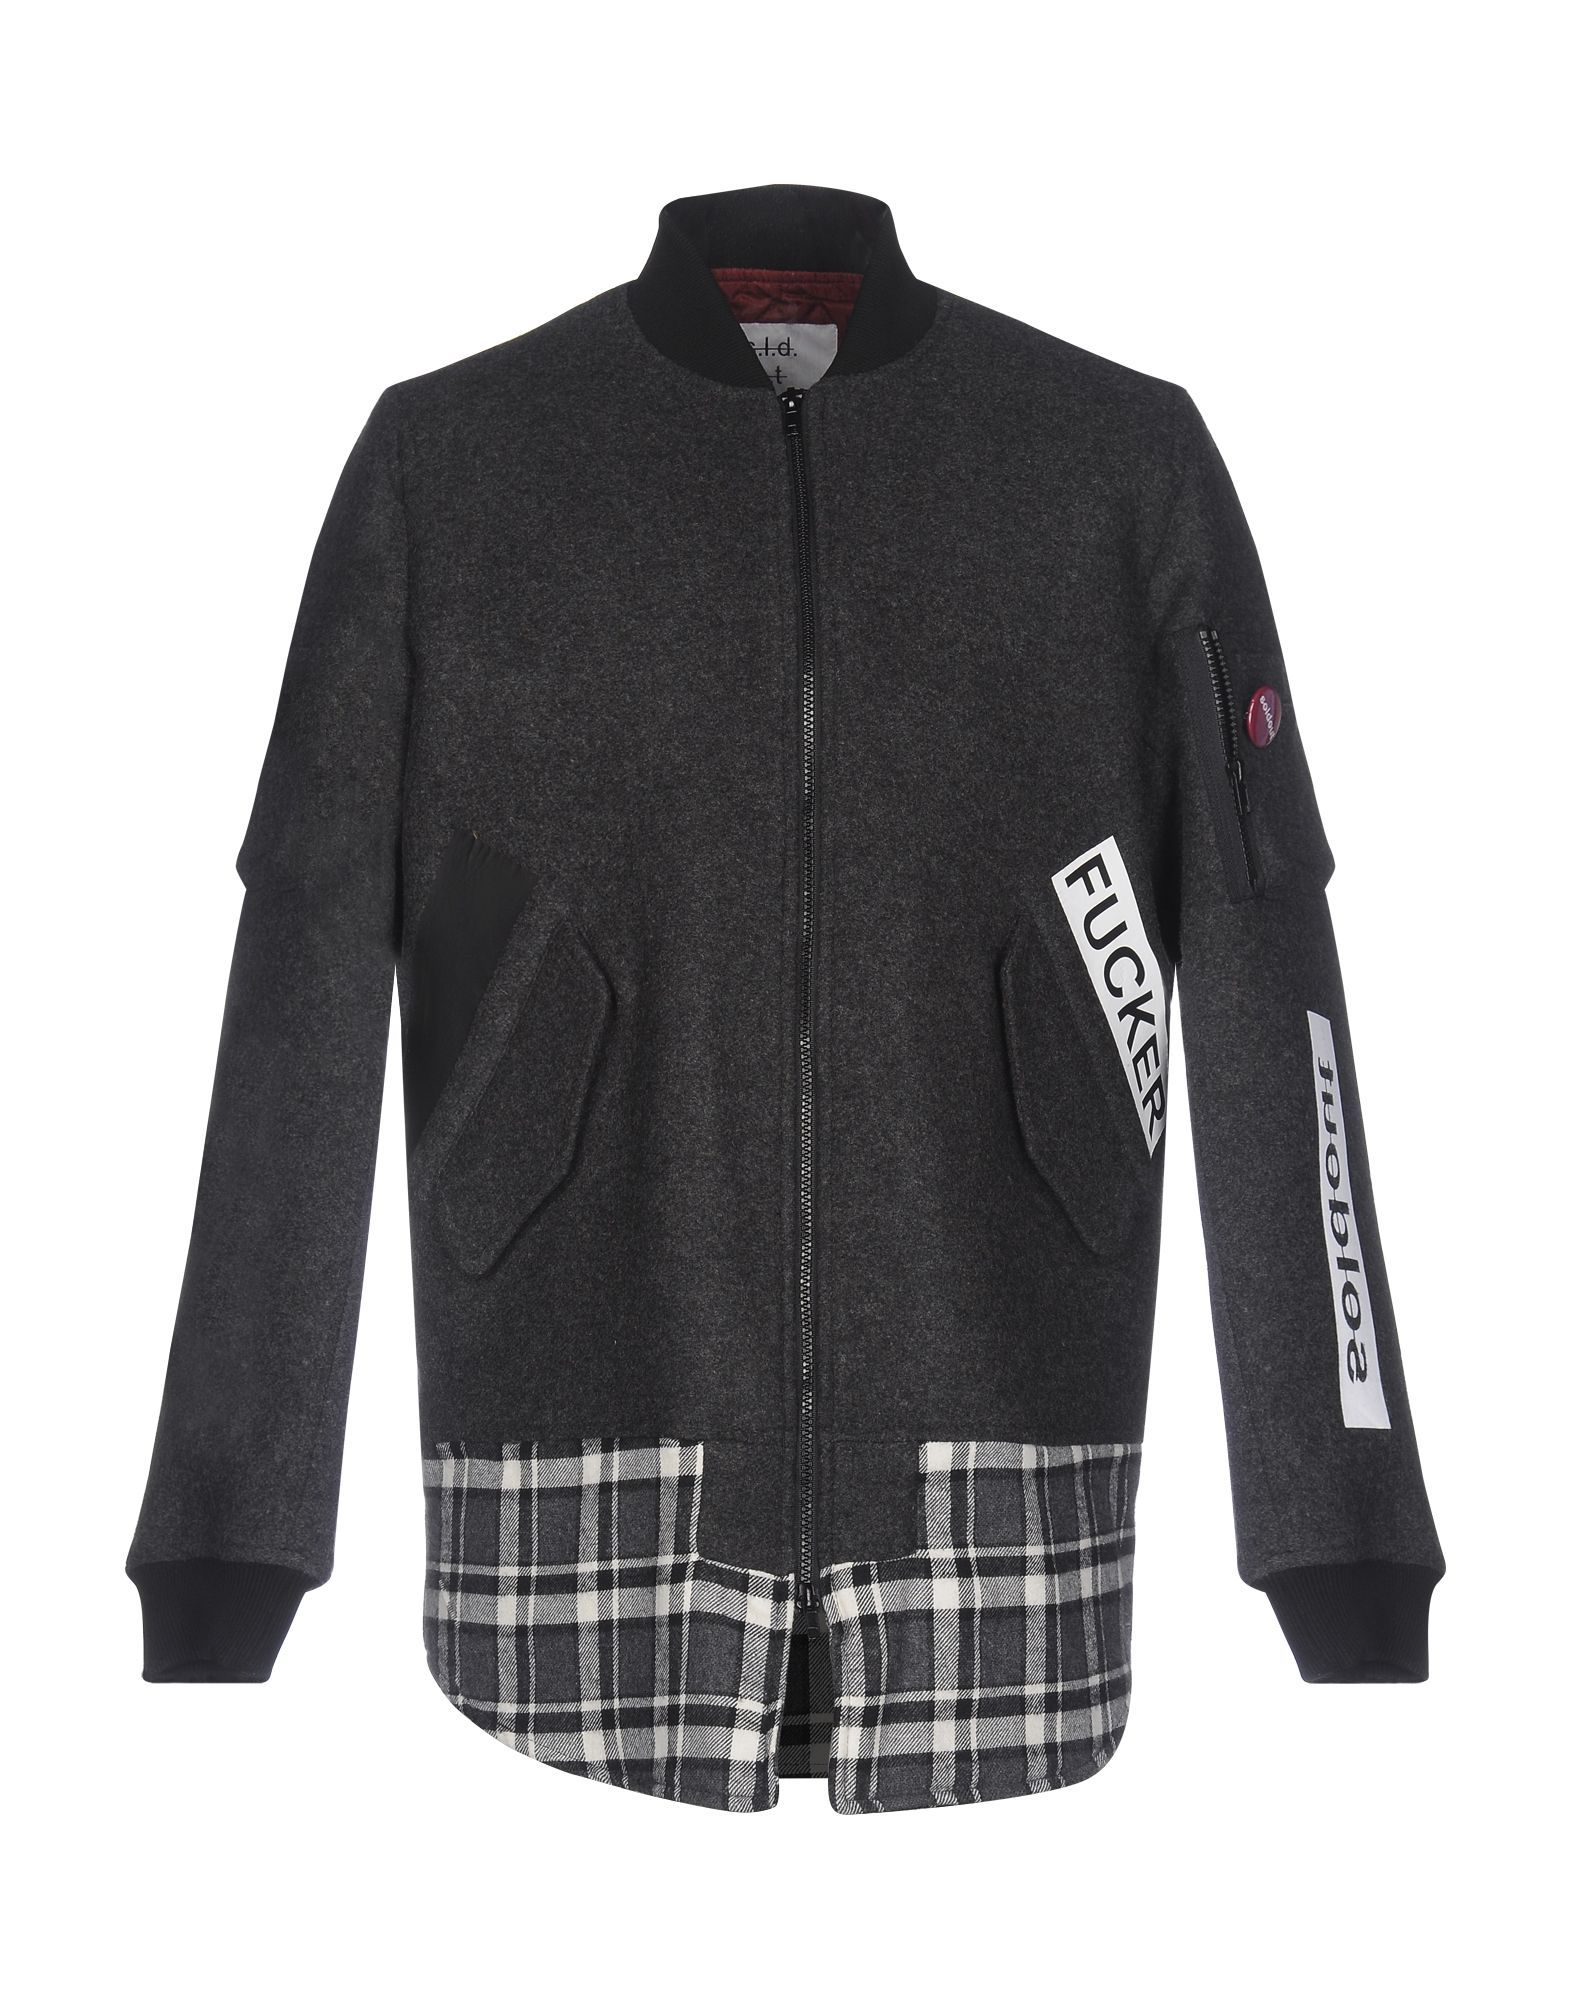 Sold Out Man Steel grey Jackets